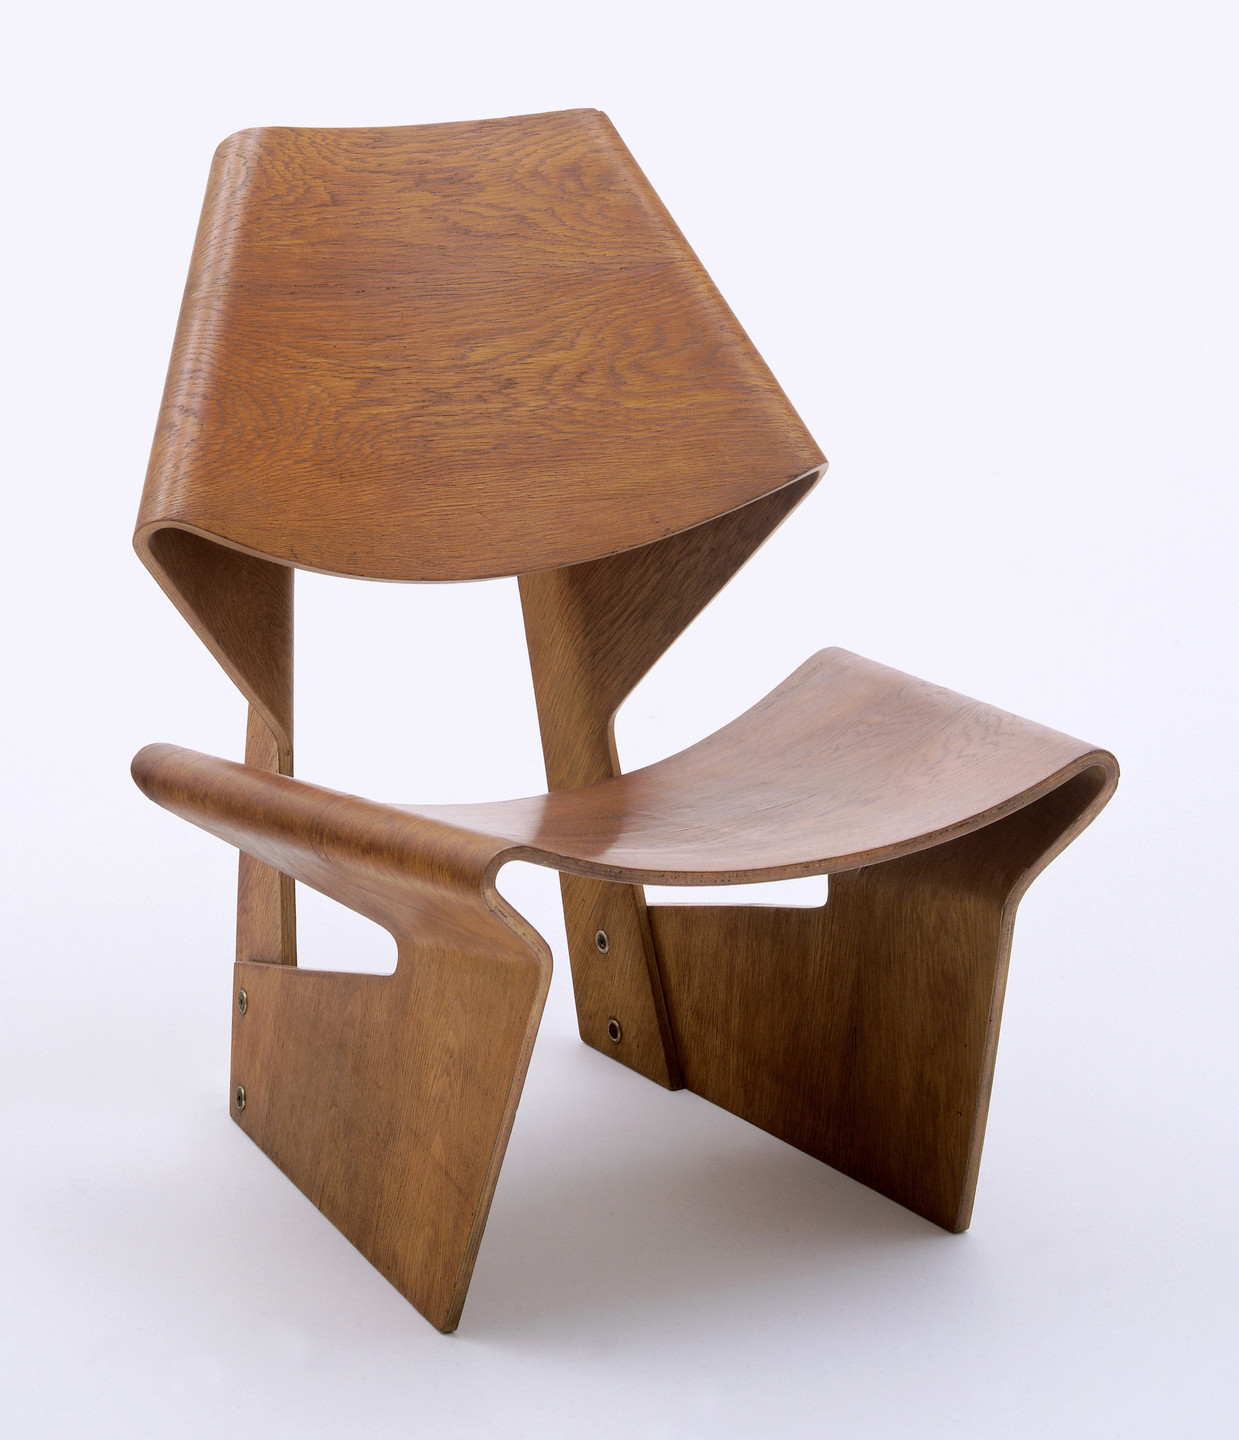 Grete Jalk. Lounge Chair. 1963